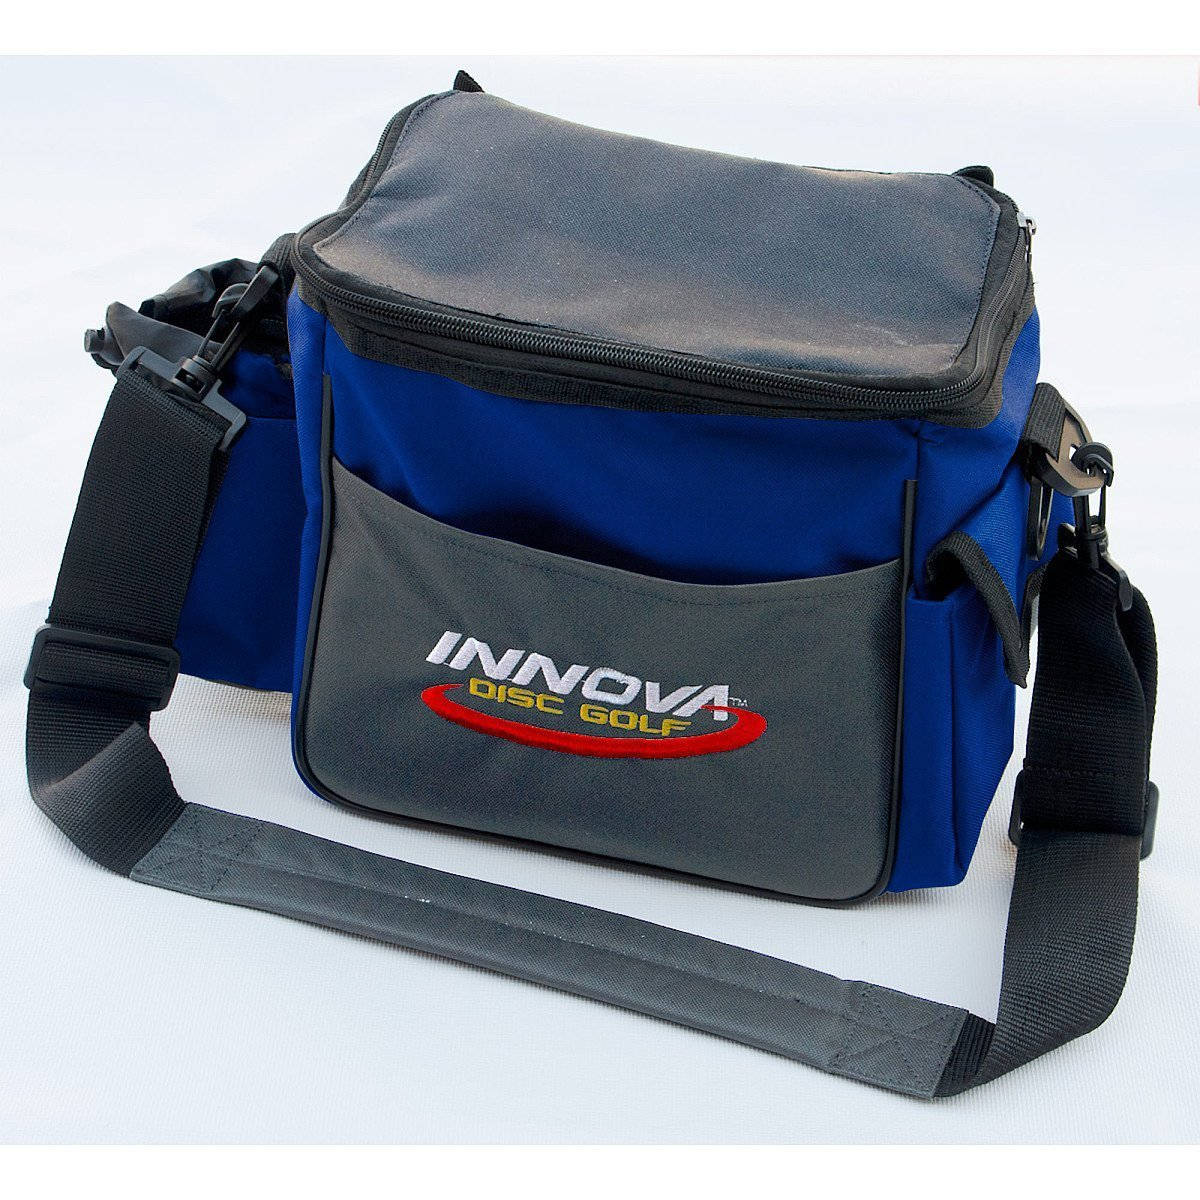 Innova Discs Standard Disc Golf Bag